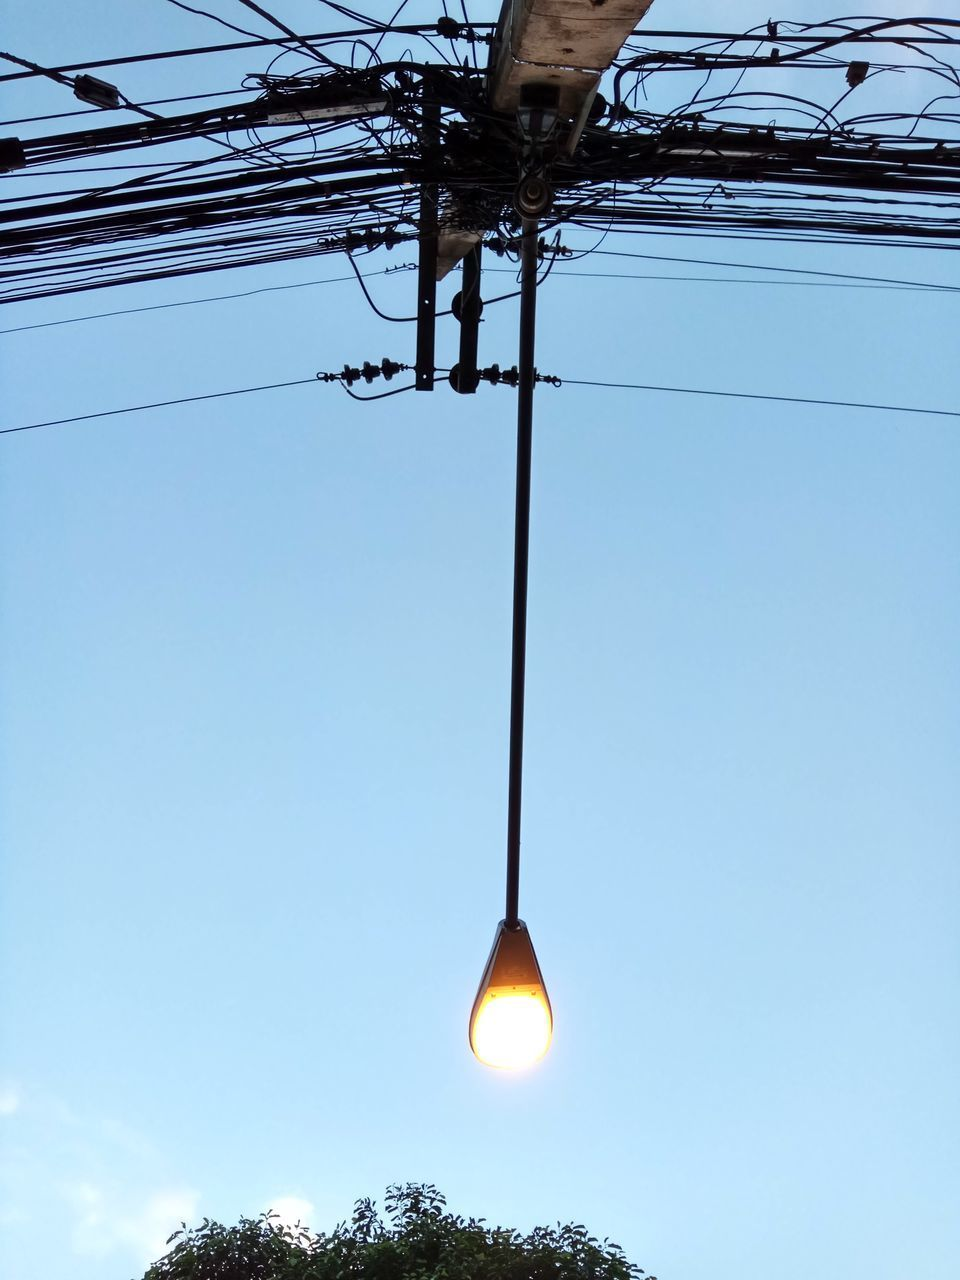 electricity, cable, power line, power supply, low angle view, fuel and power generation, connection, lighting equipment, no people, technology, electricity pylon, outdoors, blue, sky, clear sky, illuminated, day, close-up